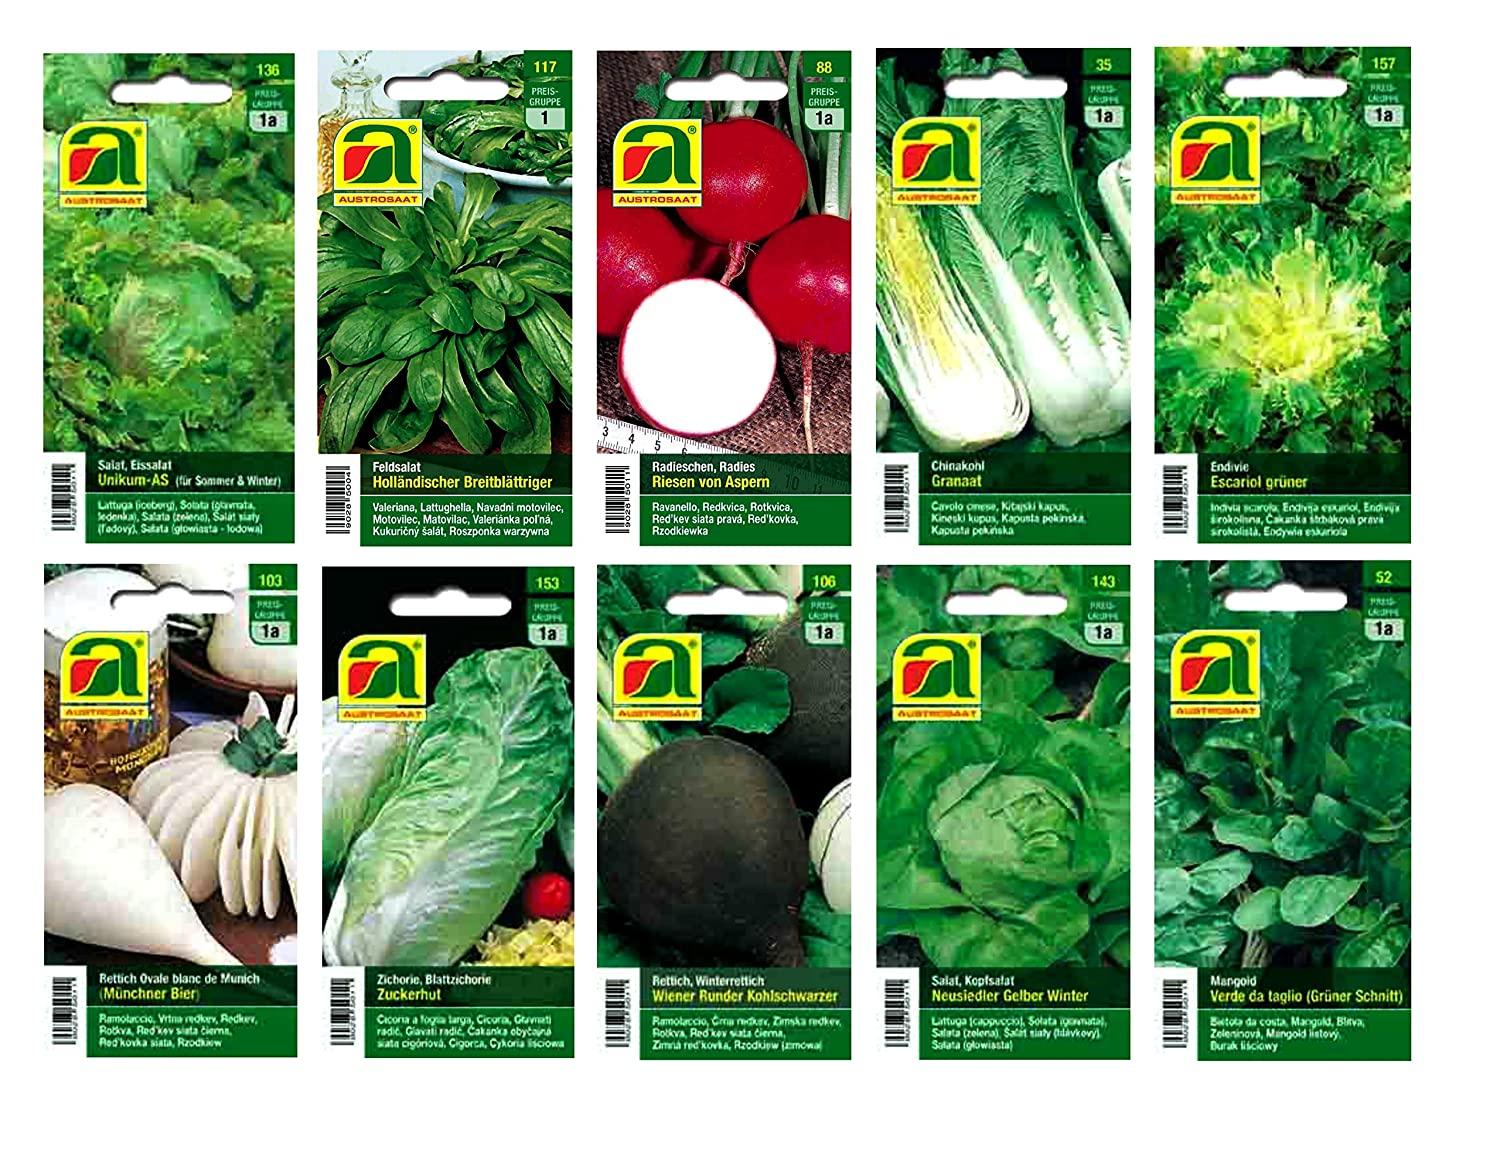 10 varieties | Vegetable seeds Assortment | suitable for beginners | robust mixture | from now on winter promotion price Austrosaat